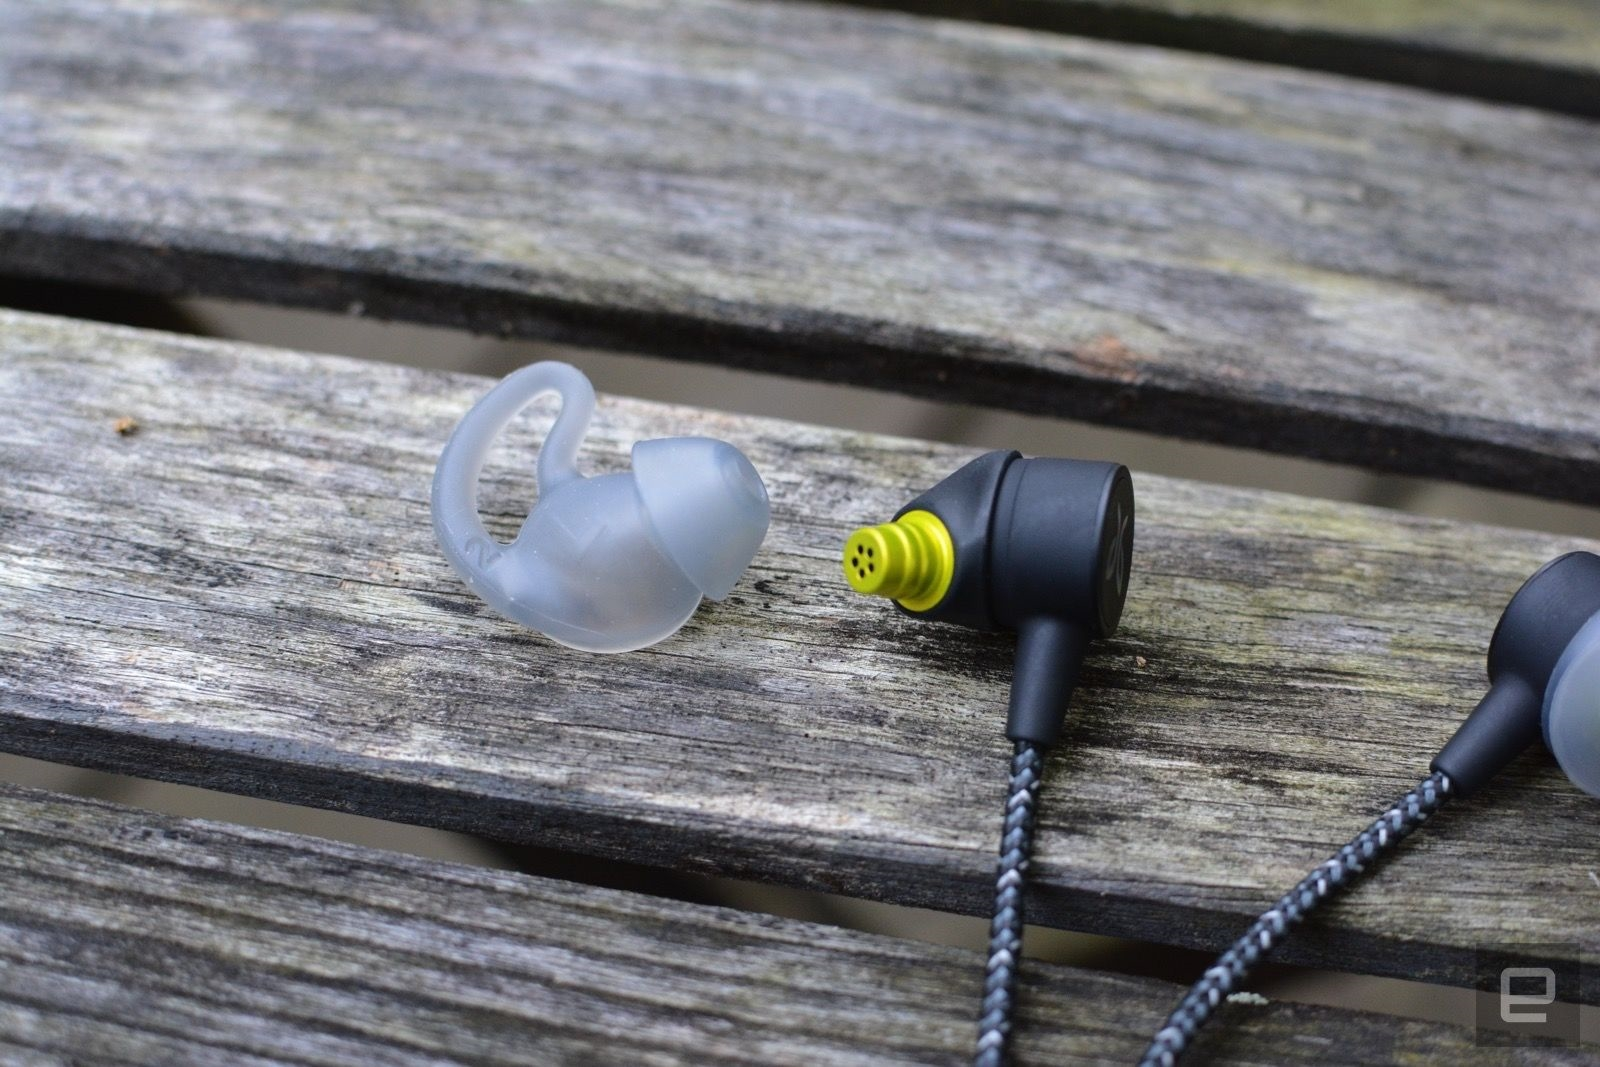 Jaybird's Tarah Pro wireless earbuds offer 14 hours of music for $160 | DeviceDaily.com